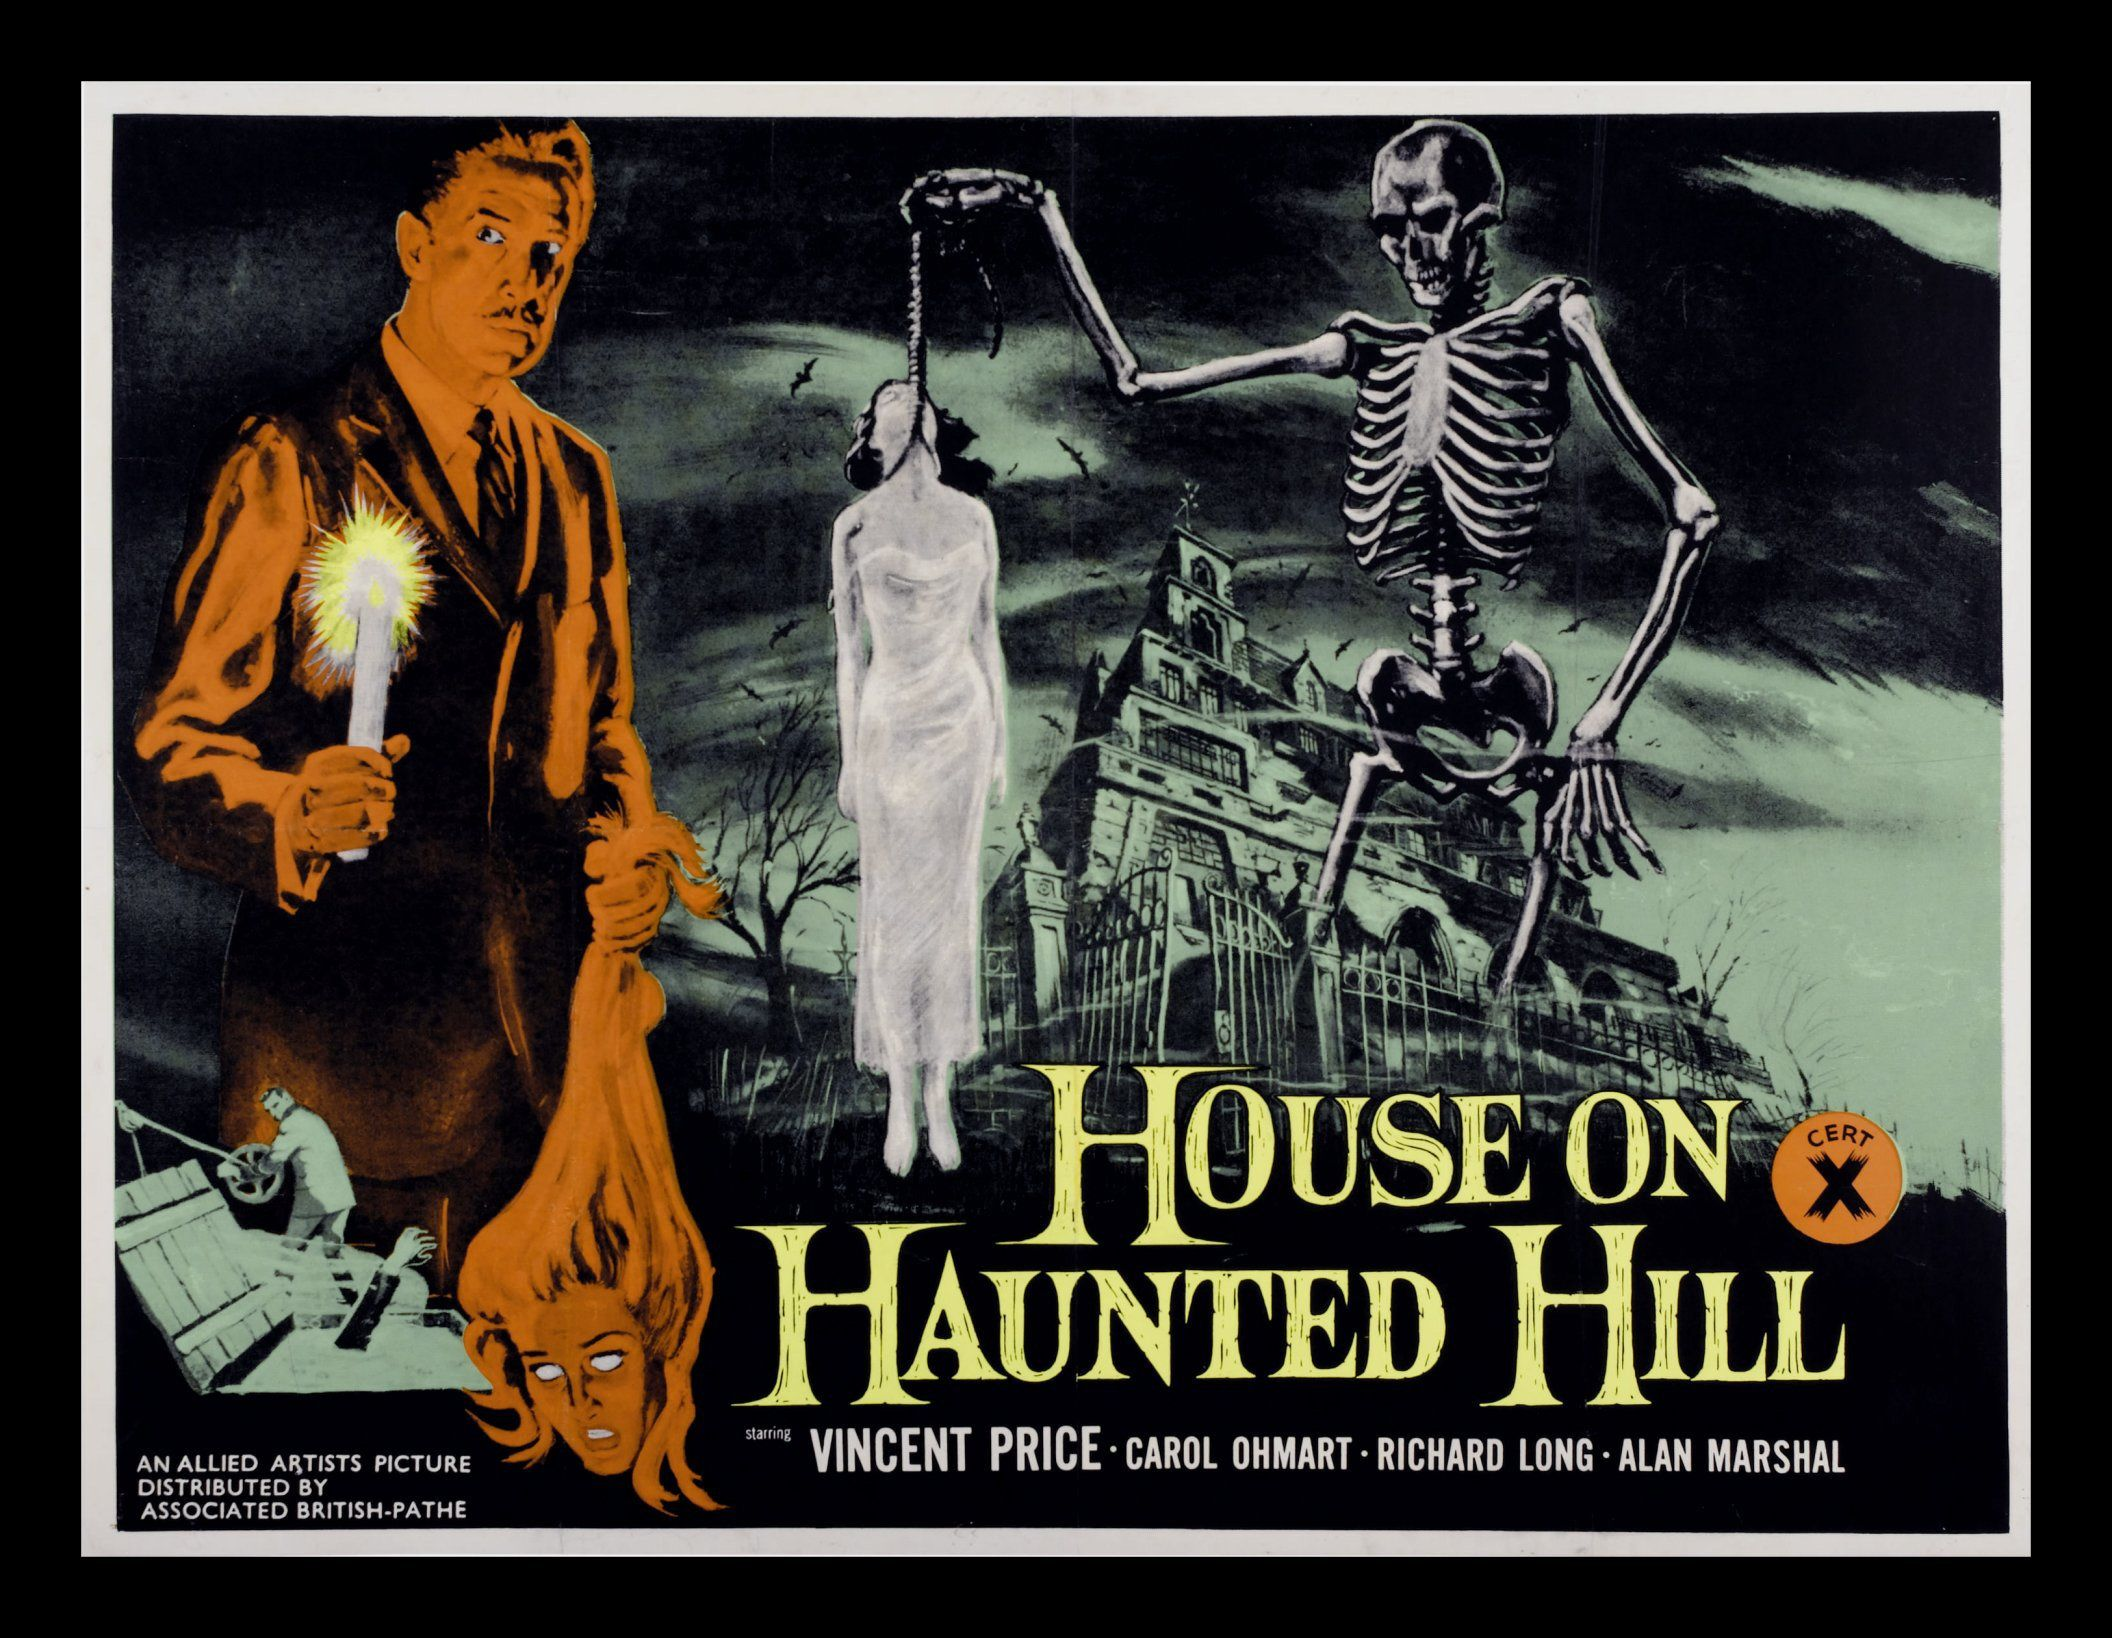 House on Haunted Hill These Amazing Shadows Movies